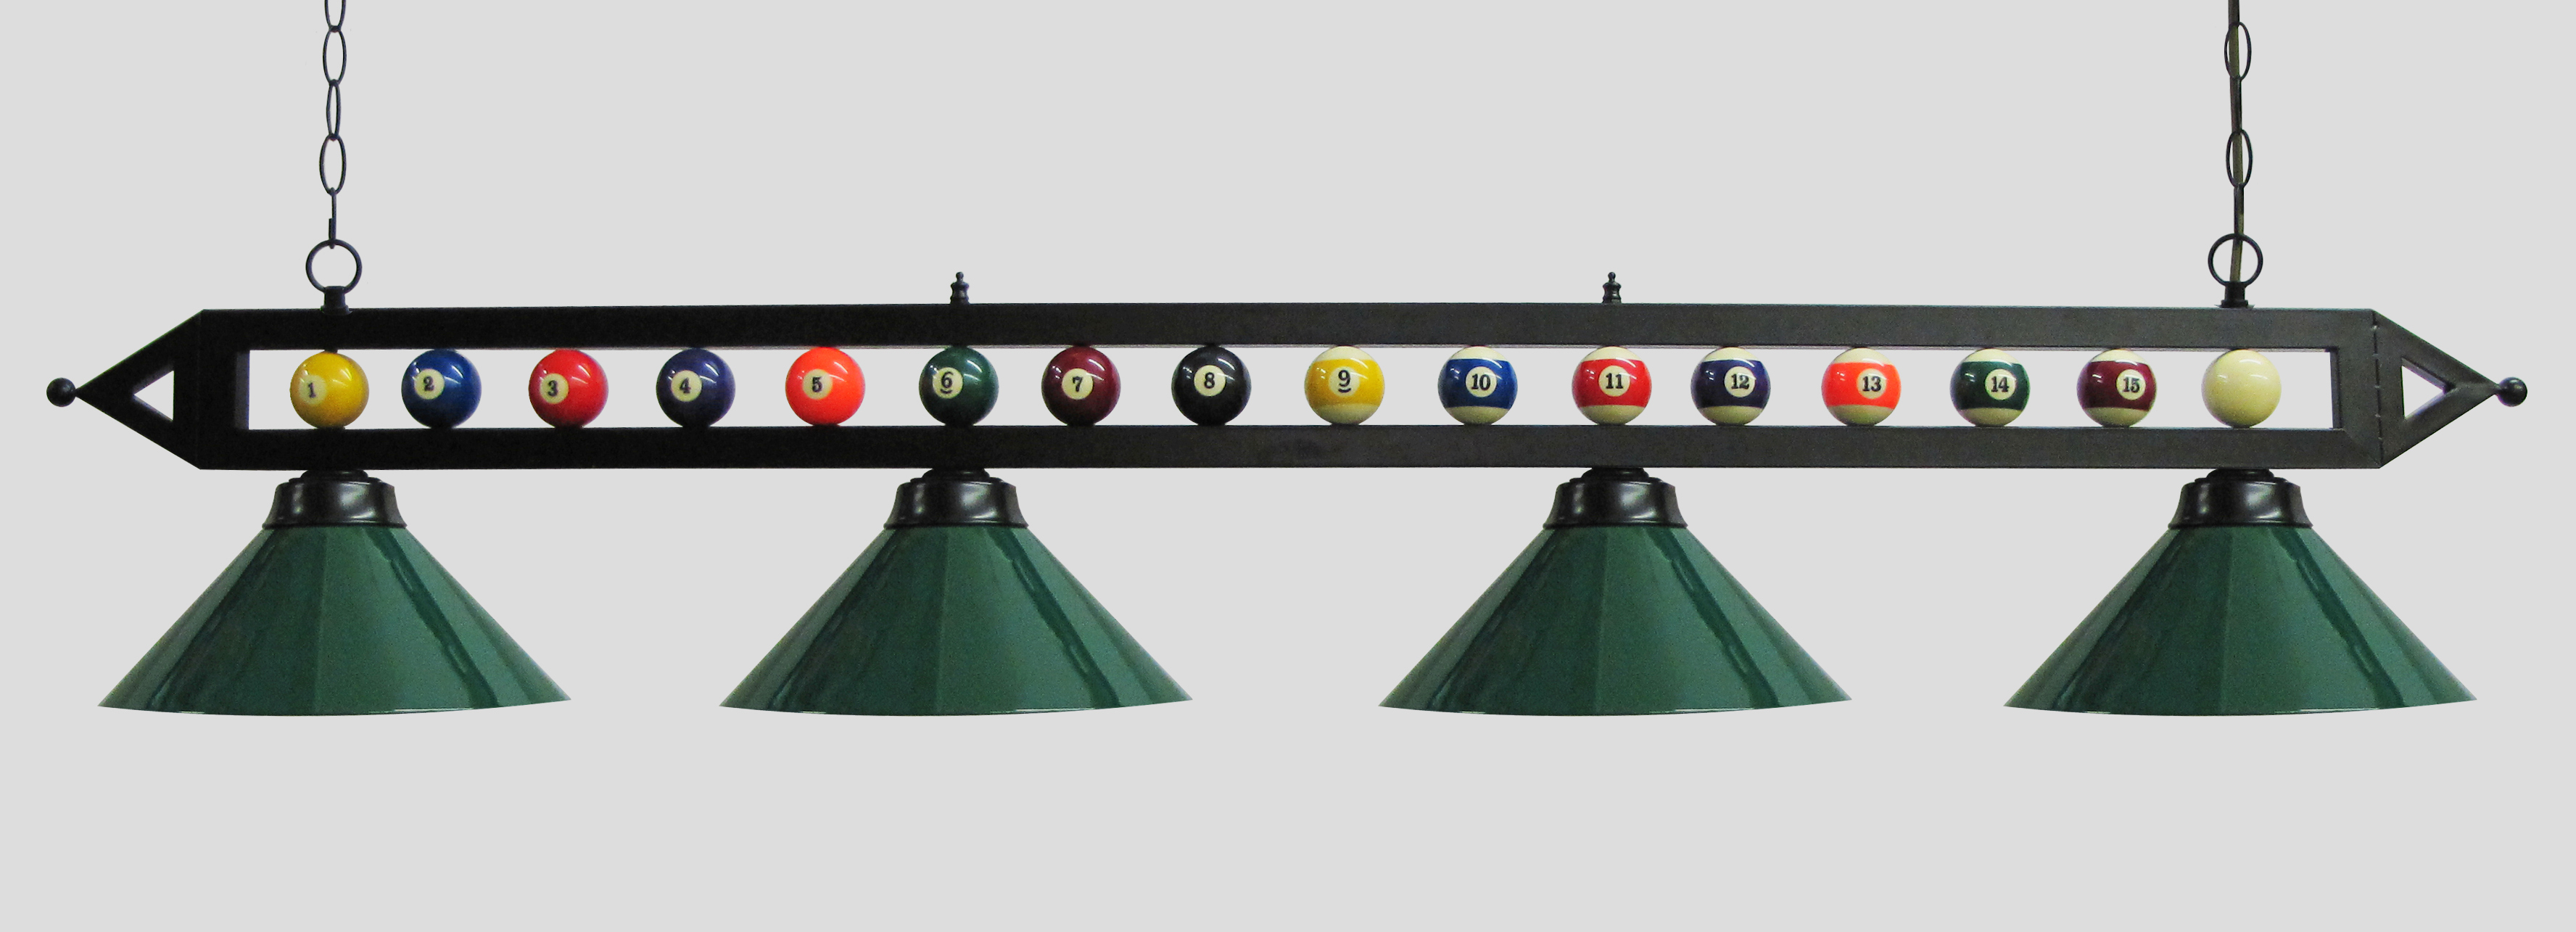 "Click here to buy 72"" Black Metal Ball Design Pool Table Light Pool Table Light W Green Metal Shades."